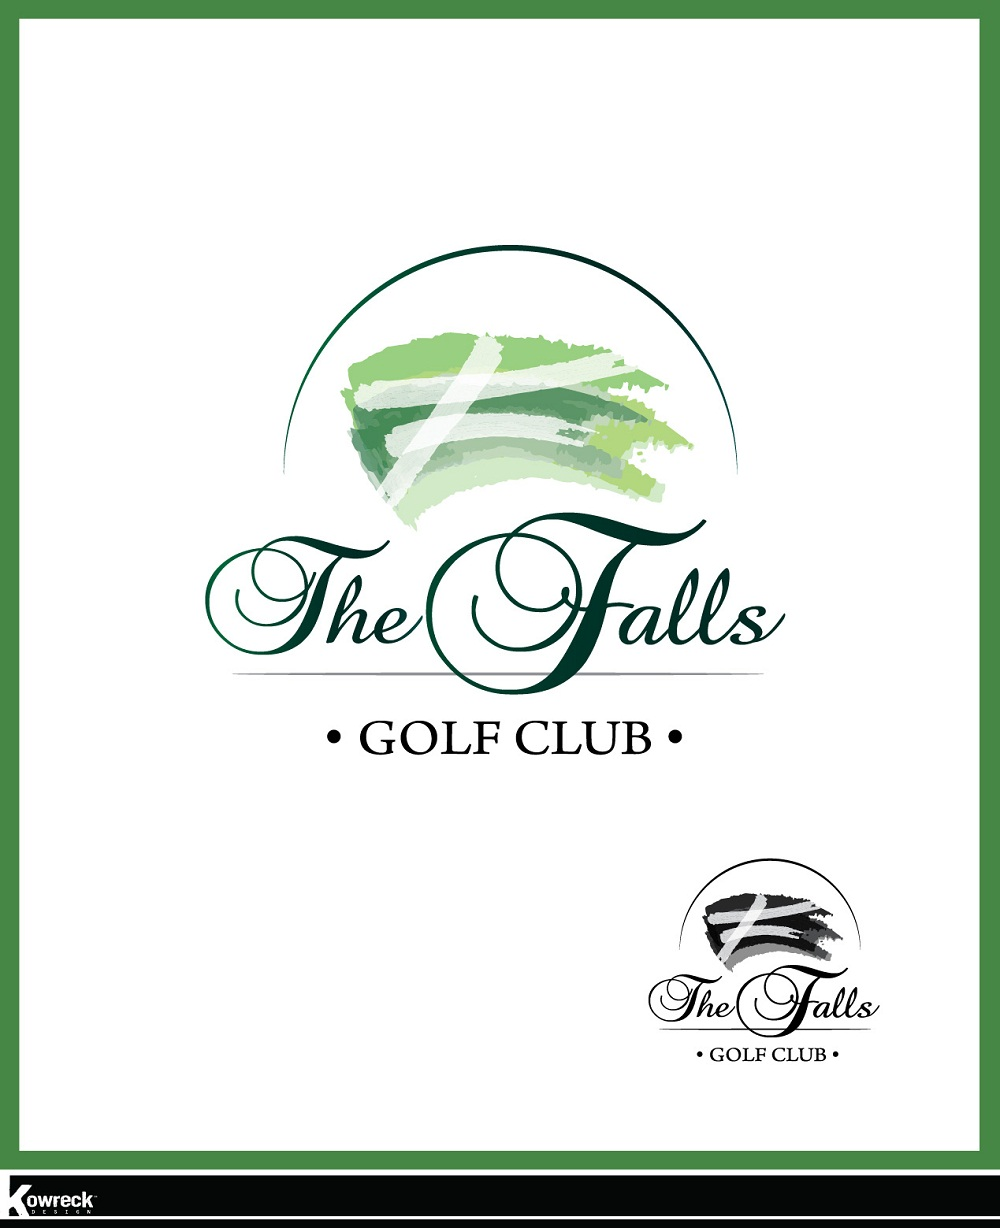 Logo Design by kowreck - Entry No. 22 in the Logo Design Contest The Falls Golf Club Logo Design.